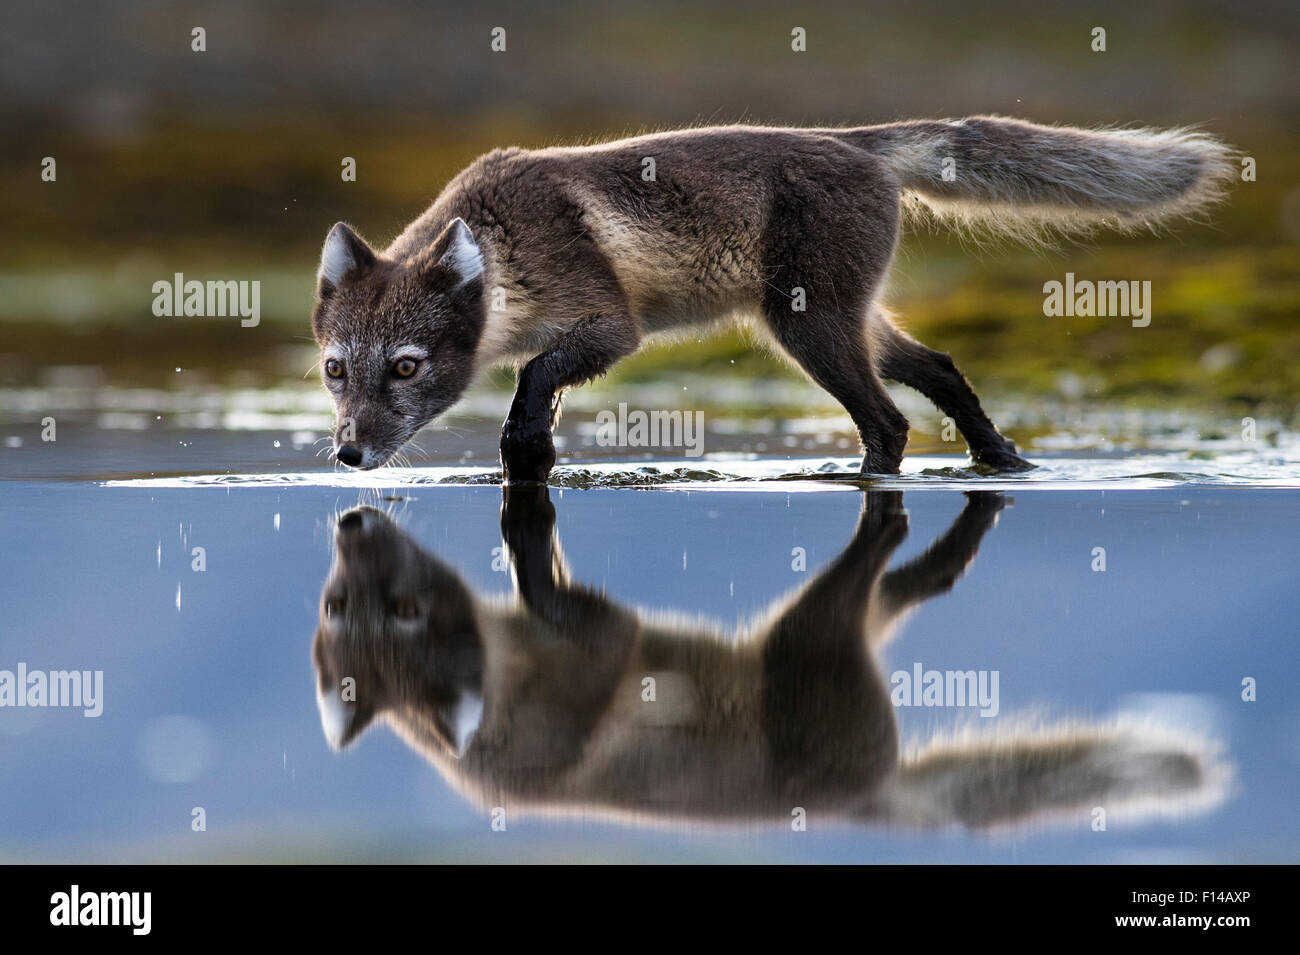 Arctic fox (Vulpes lagopus) searching for food in shallow water, Spitsbergen, Svalbard, Norway, July. - Stock Image